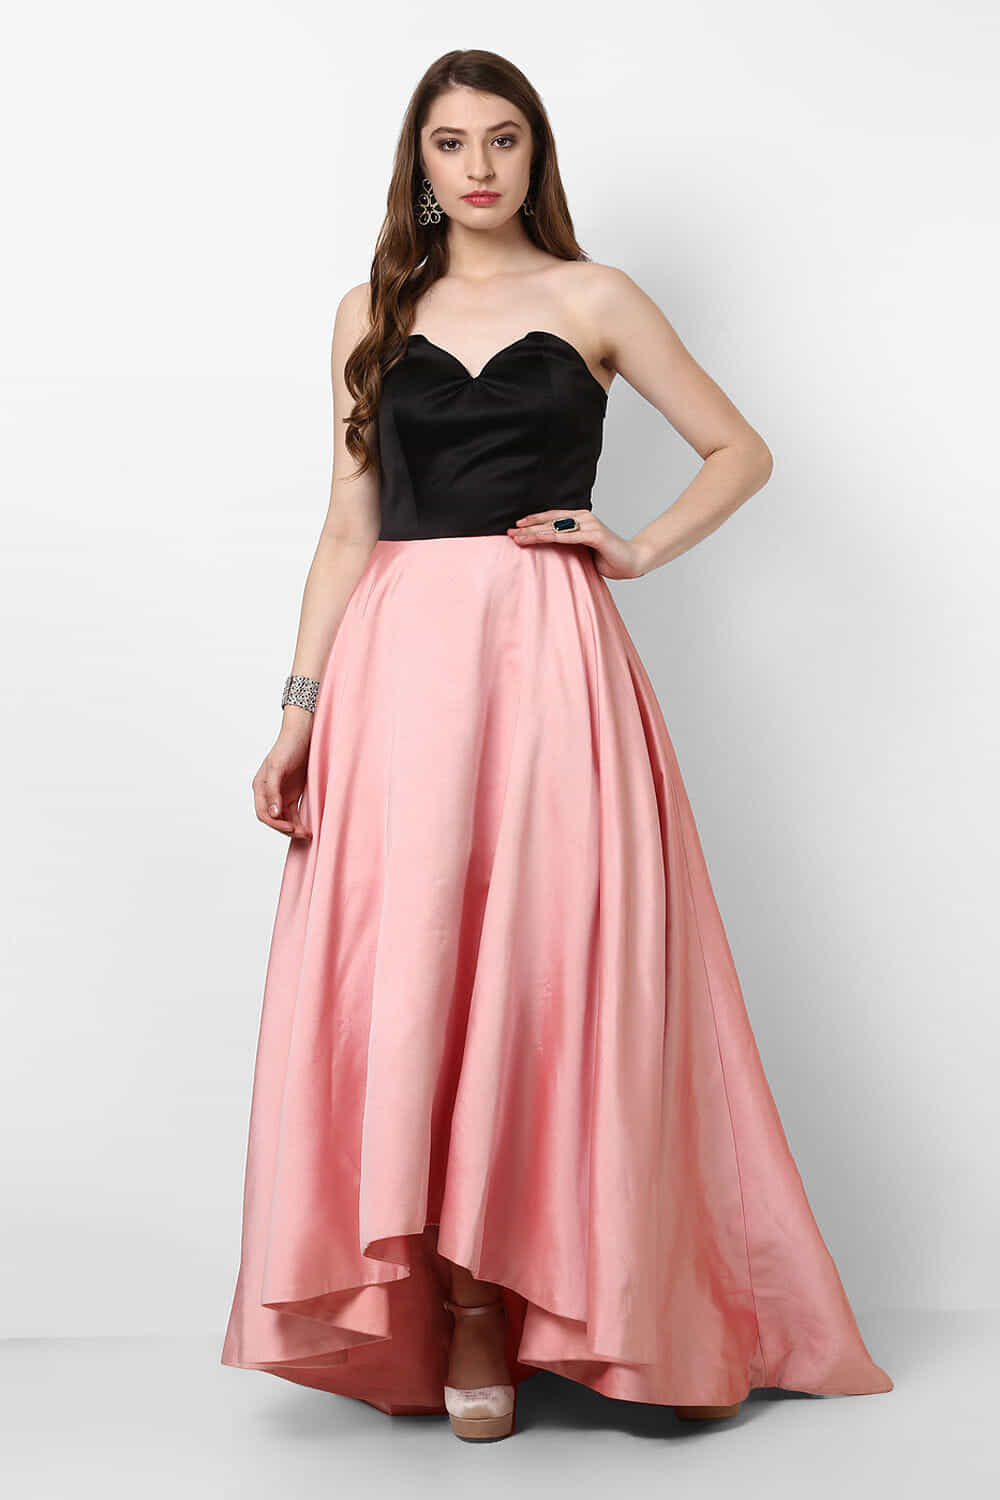 Rent AIRA BY GARIMA - Black And Pink Satin Gown